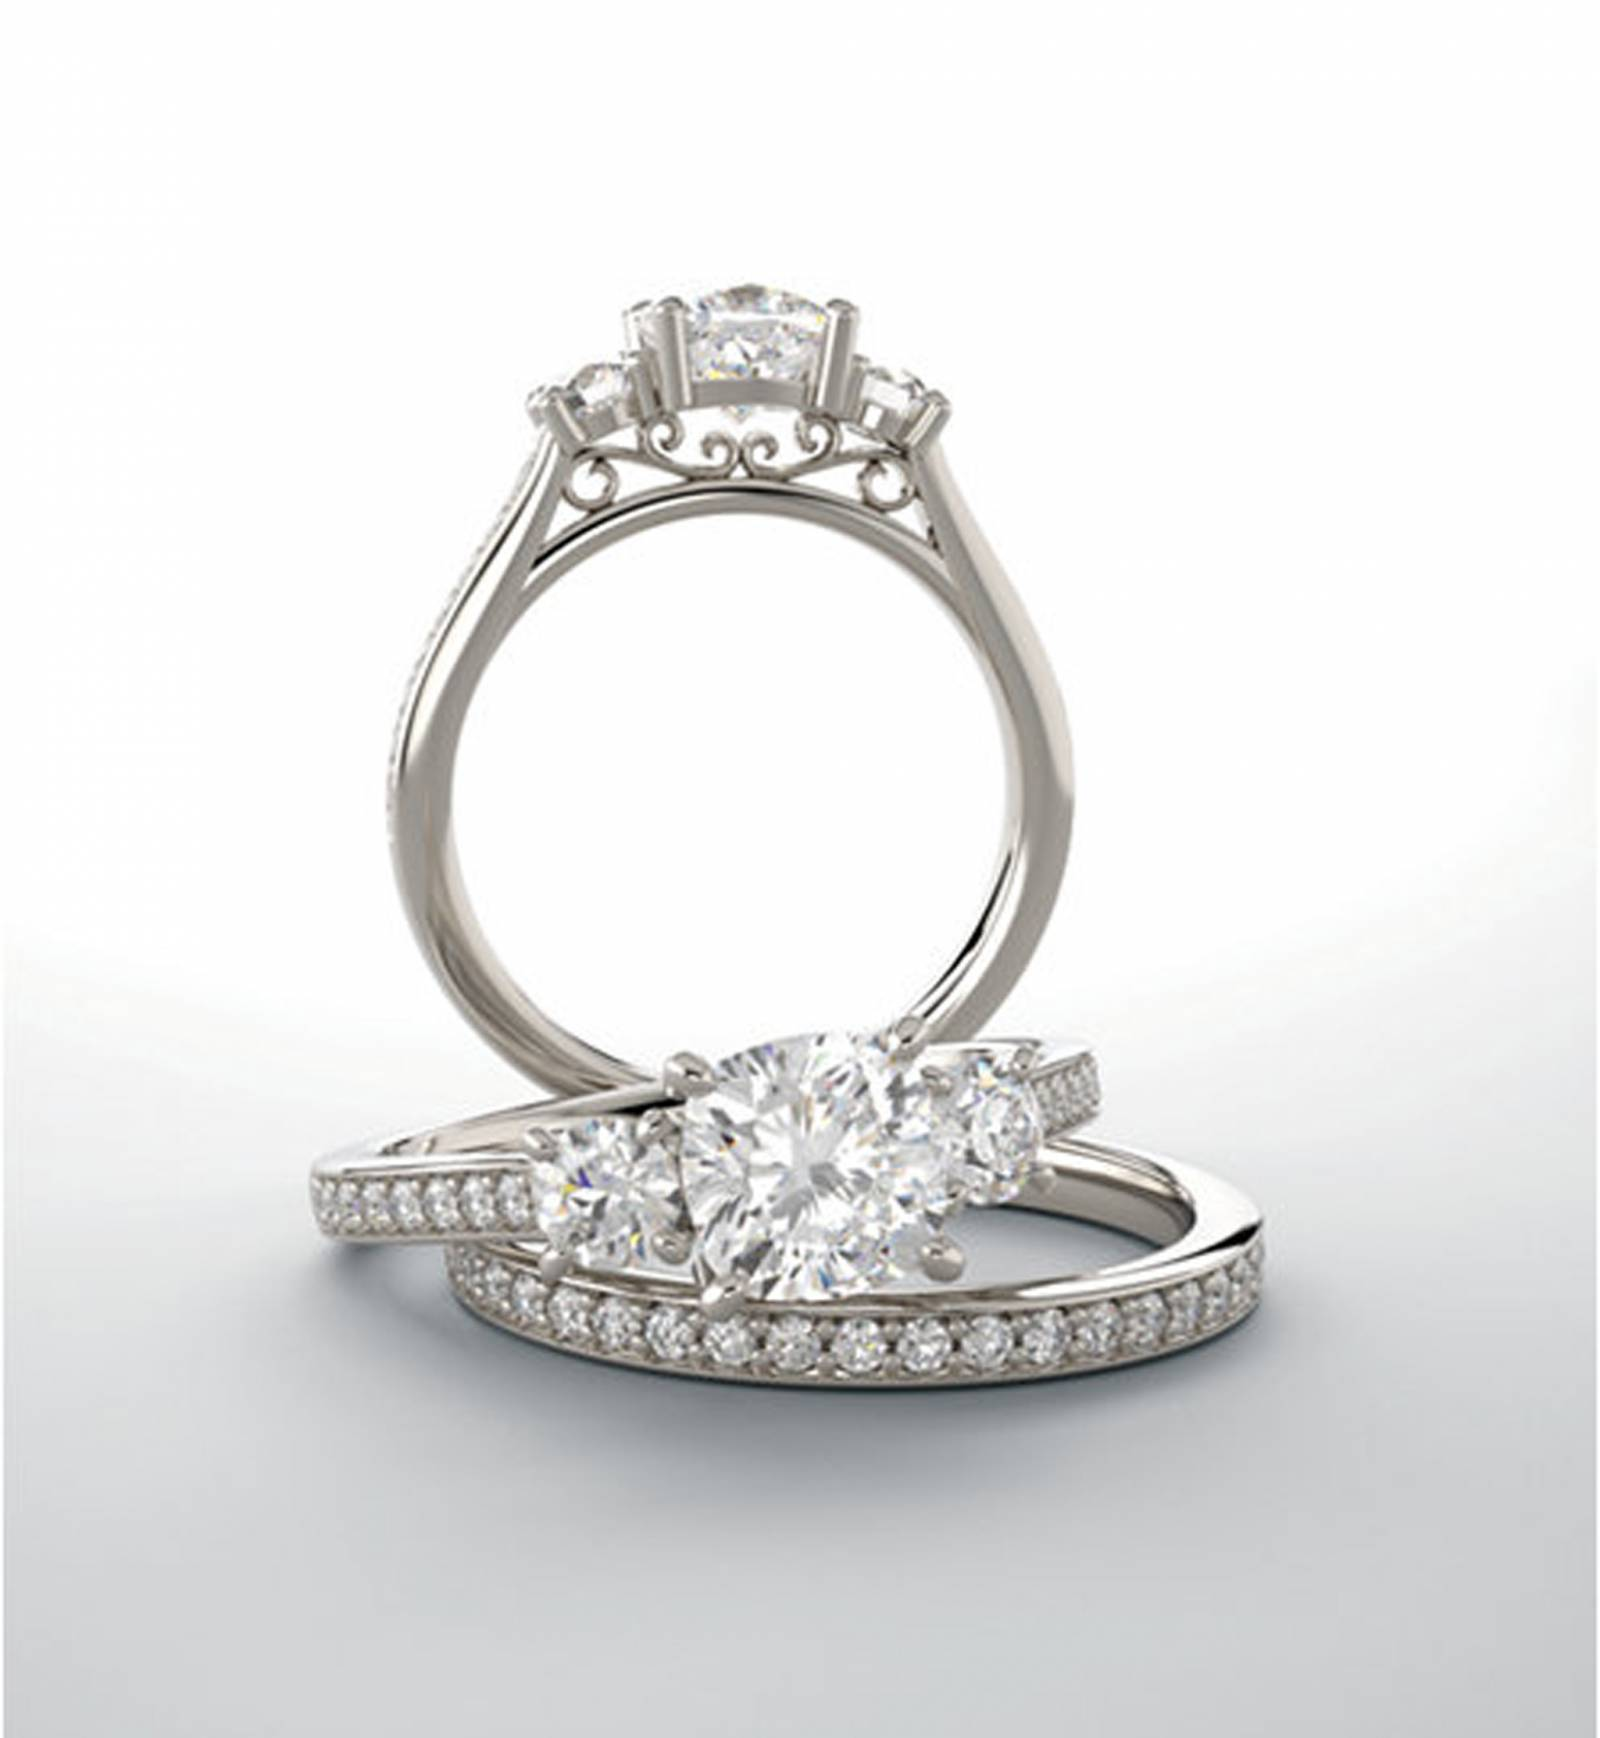 silver diamond wedding and engagement rings designed by McCall Jewelry Company